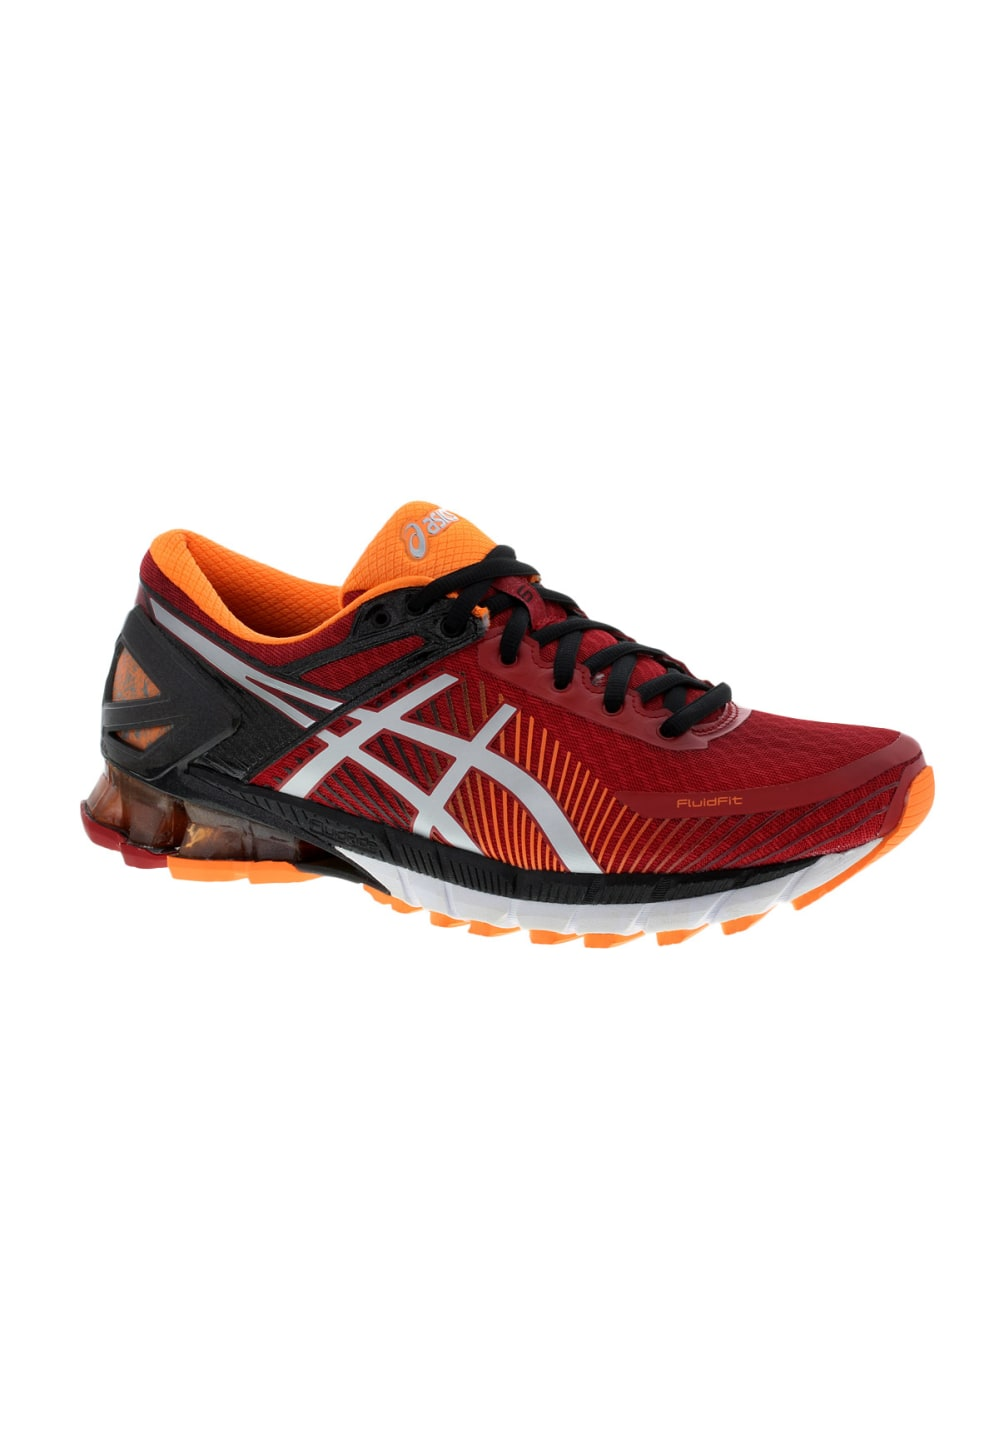 outlet store 69147 2769b ASICS GEL-Kinsei 6 - Running shoes for Men - Red